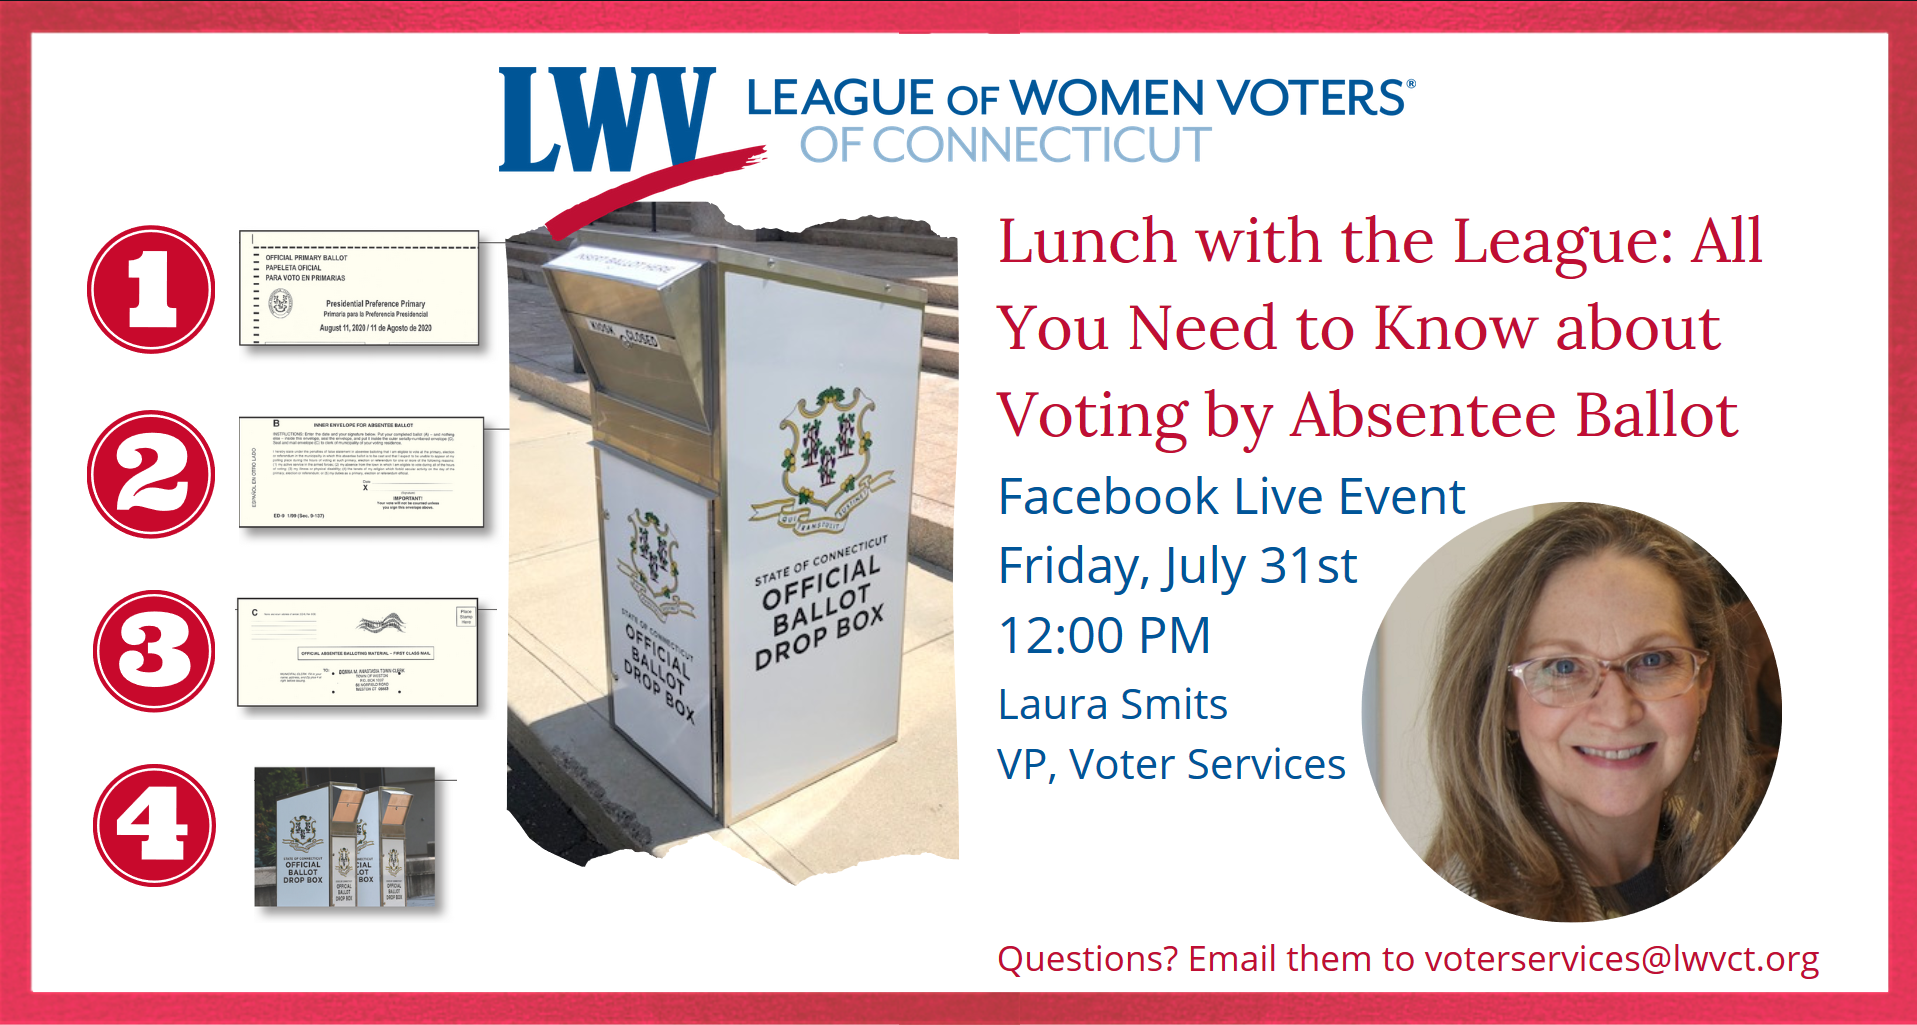 Lunch with the League All You Need to Know About Voting by Absentee Ballot July 31 Event Image